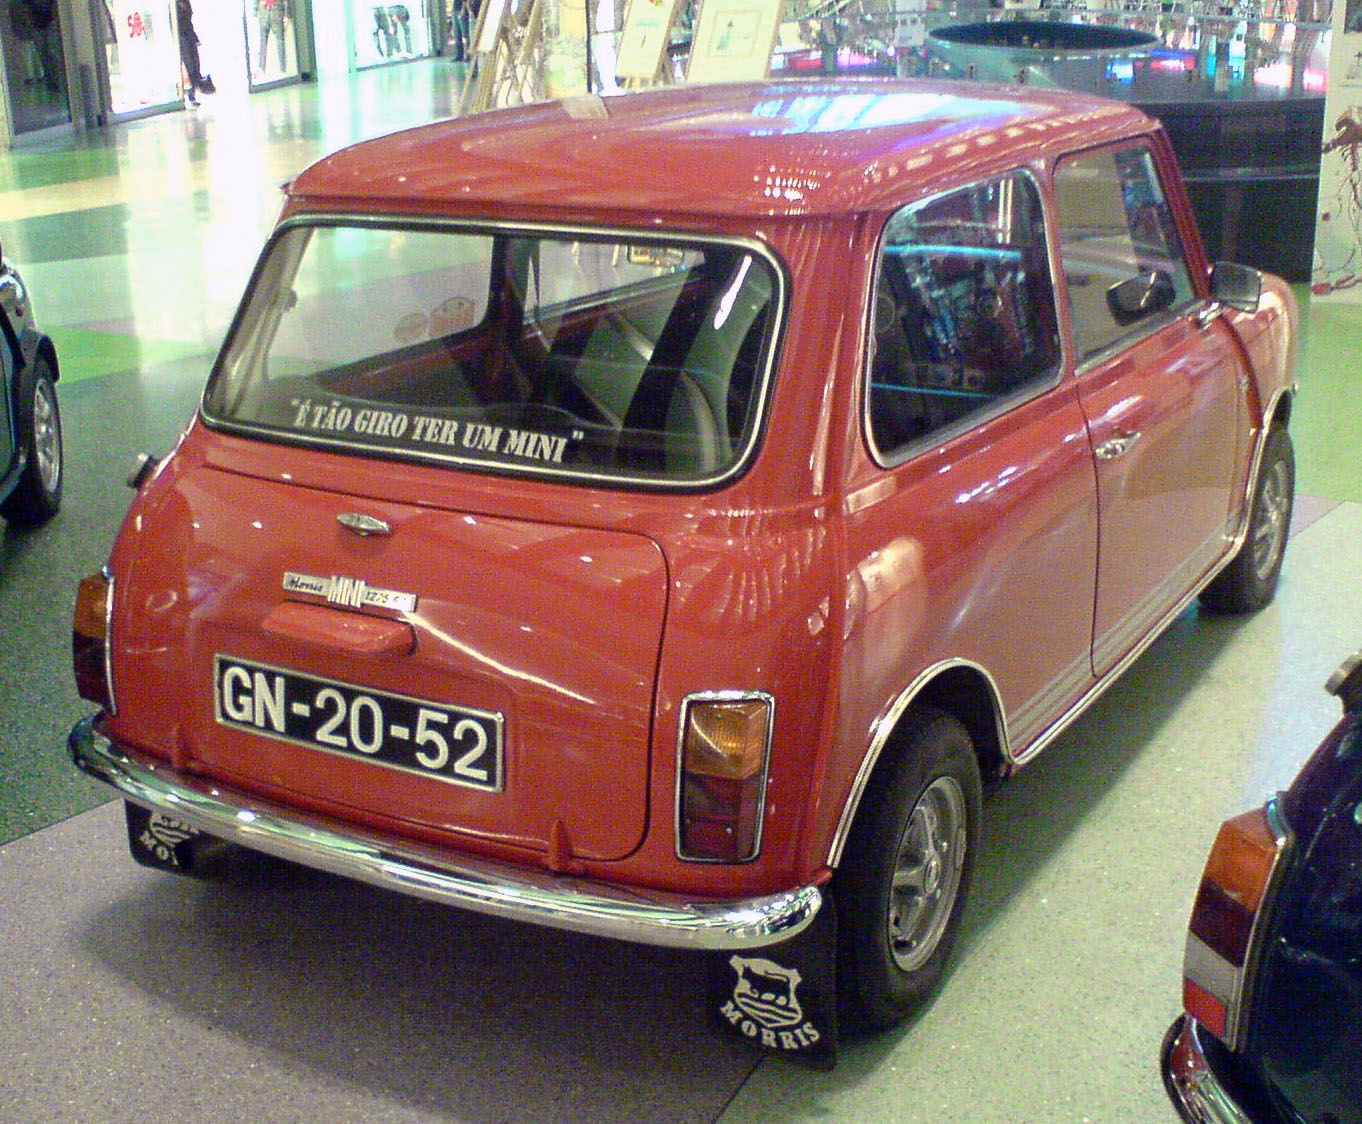 File:Mini 1275 GT, rear.jpg - Wikimedia Commons